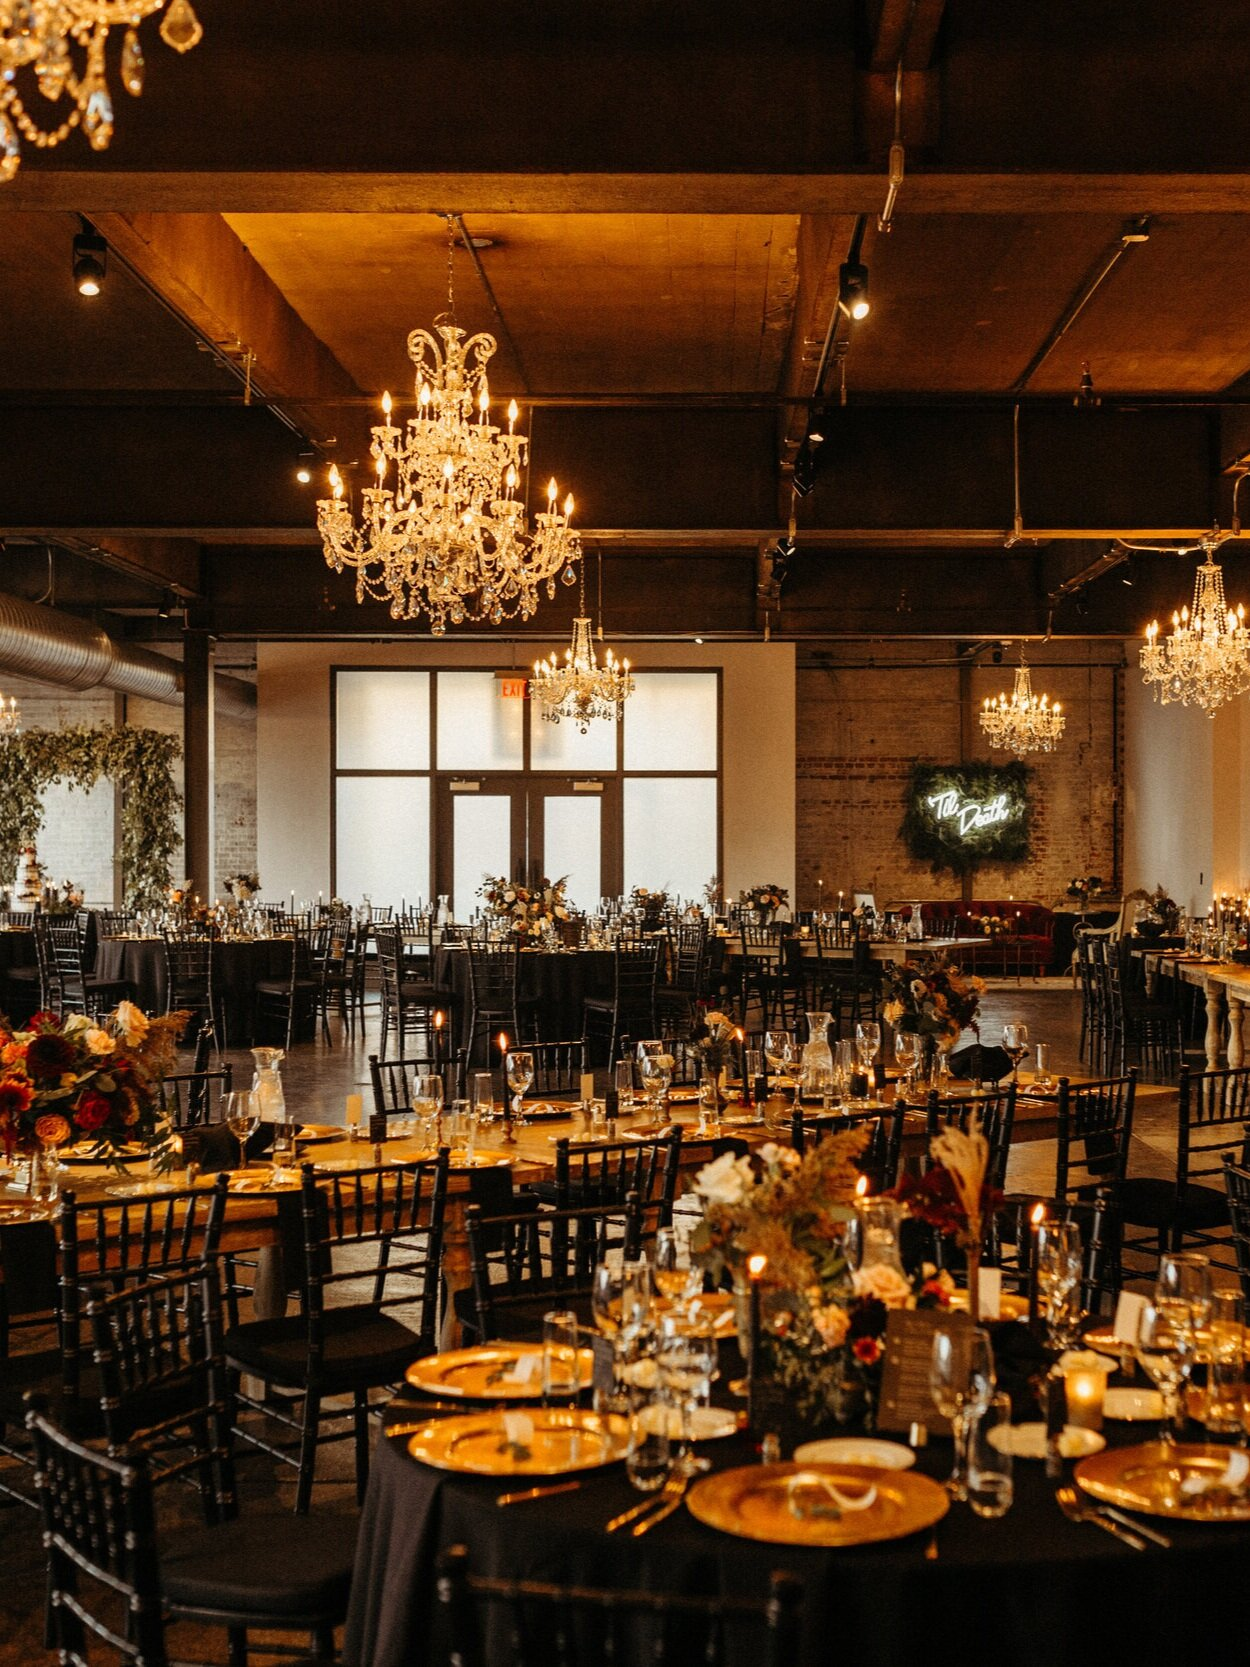 More Than Flowers - The Pridmore Design team focuses on floral and event design, but we exist to be flexible to your unique needs. We also provide week-of coordinating, event design, paper suite design, layout assistance, favor display, vintage rental selection and more.